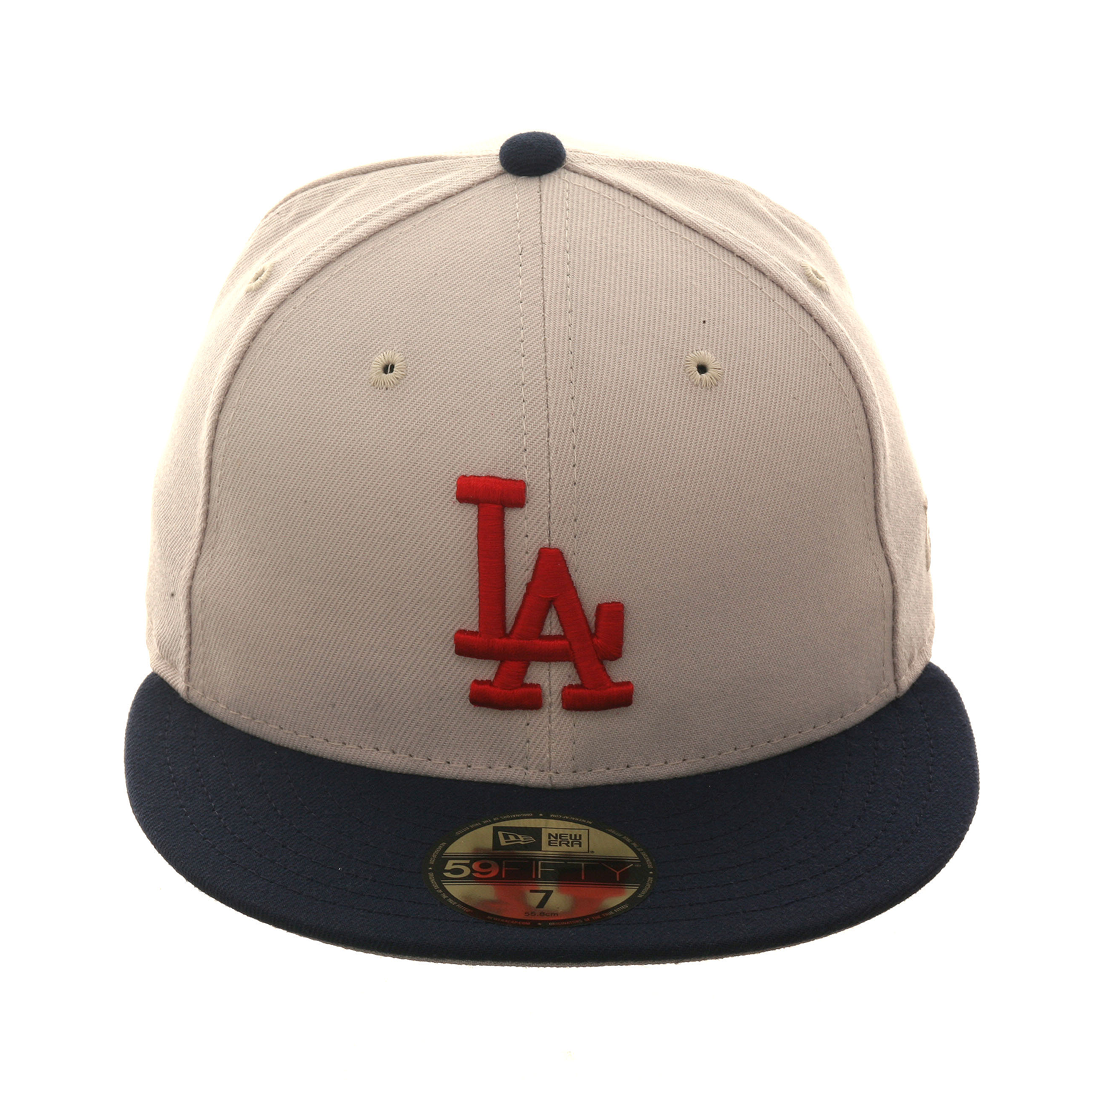 Exclusive New Era 59Fifty Los Angeles Dodgers Hat - 2T Stone a7a80004674